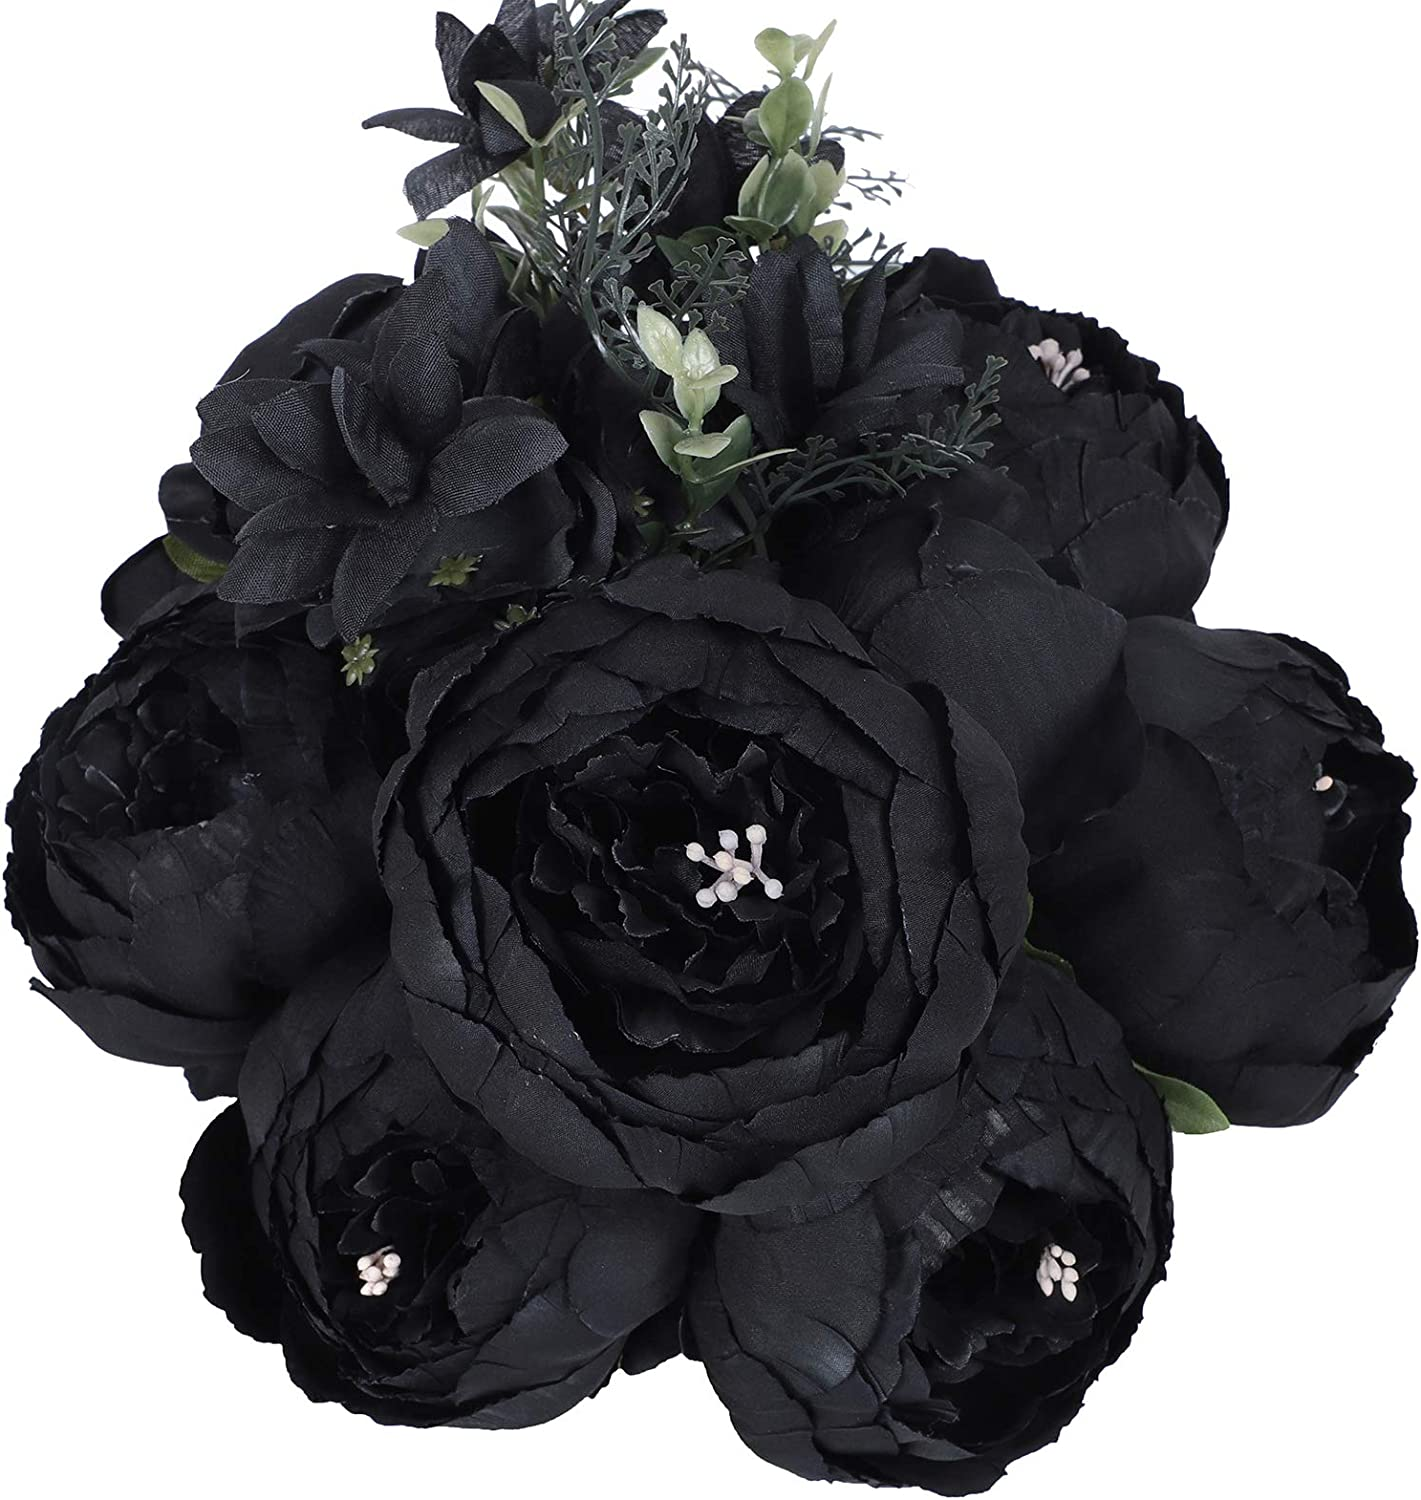 JyiHope Artificial Peony Silk Flowers Fake Peonies Vintage Bouquet Home Table Centerpieces Wedding Decoration (Black)